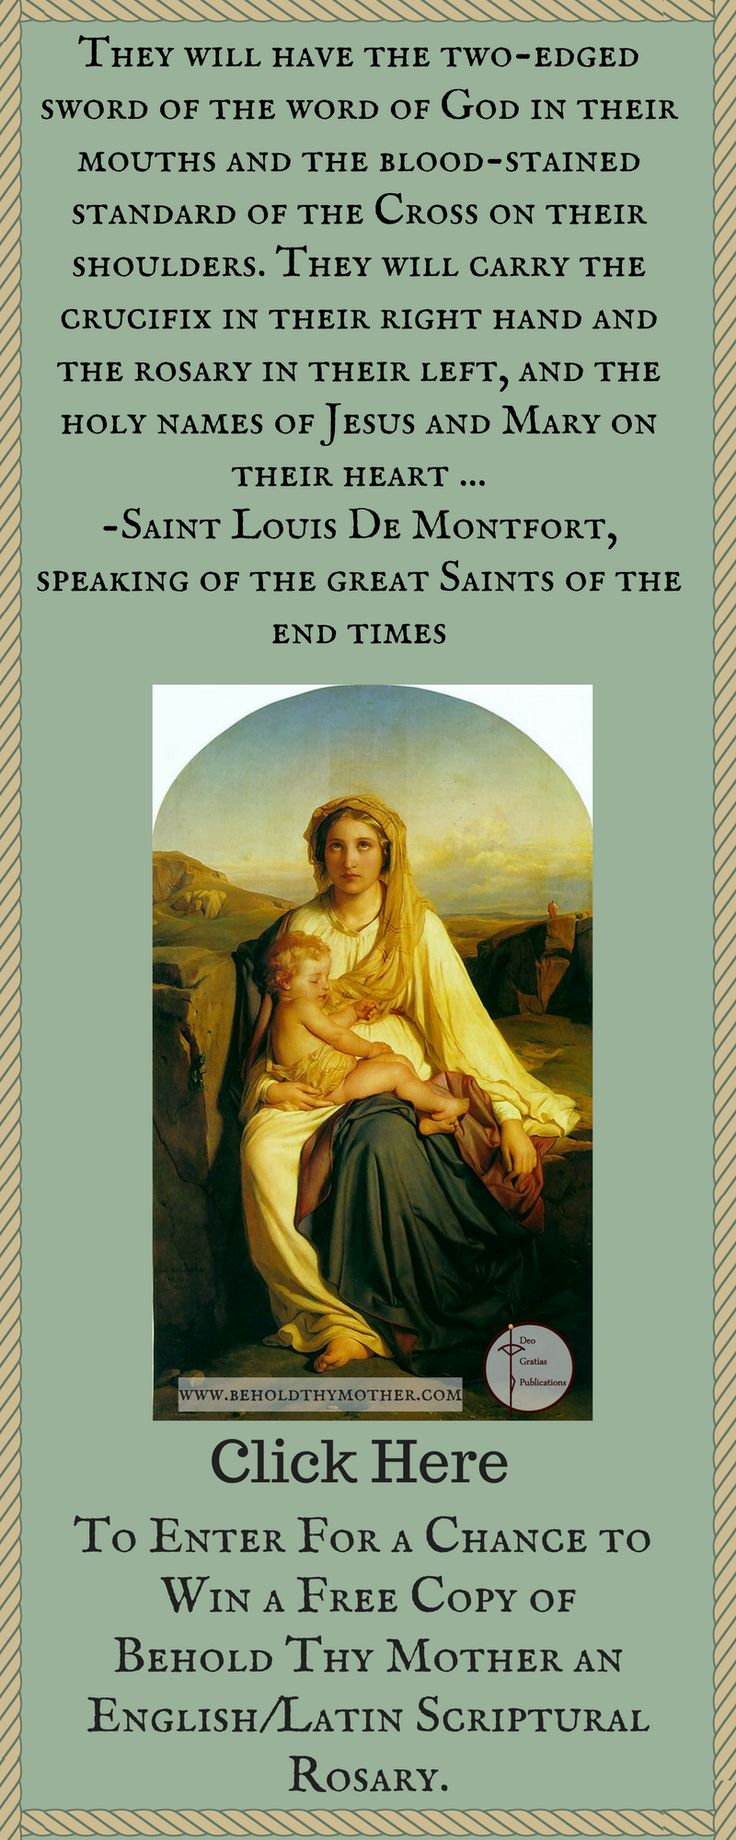 "Enter for a chance to win a free copy of the Scriptural Rosary book ""Behold Thy Mother."""